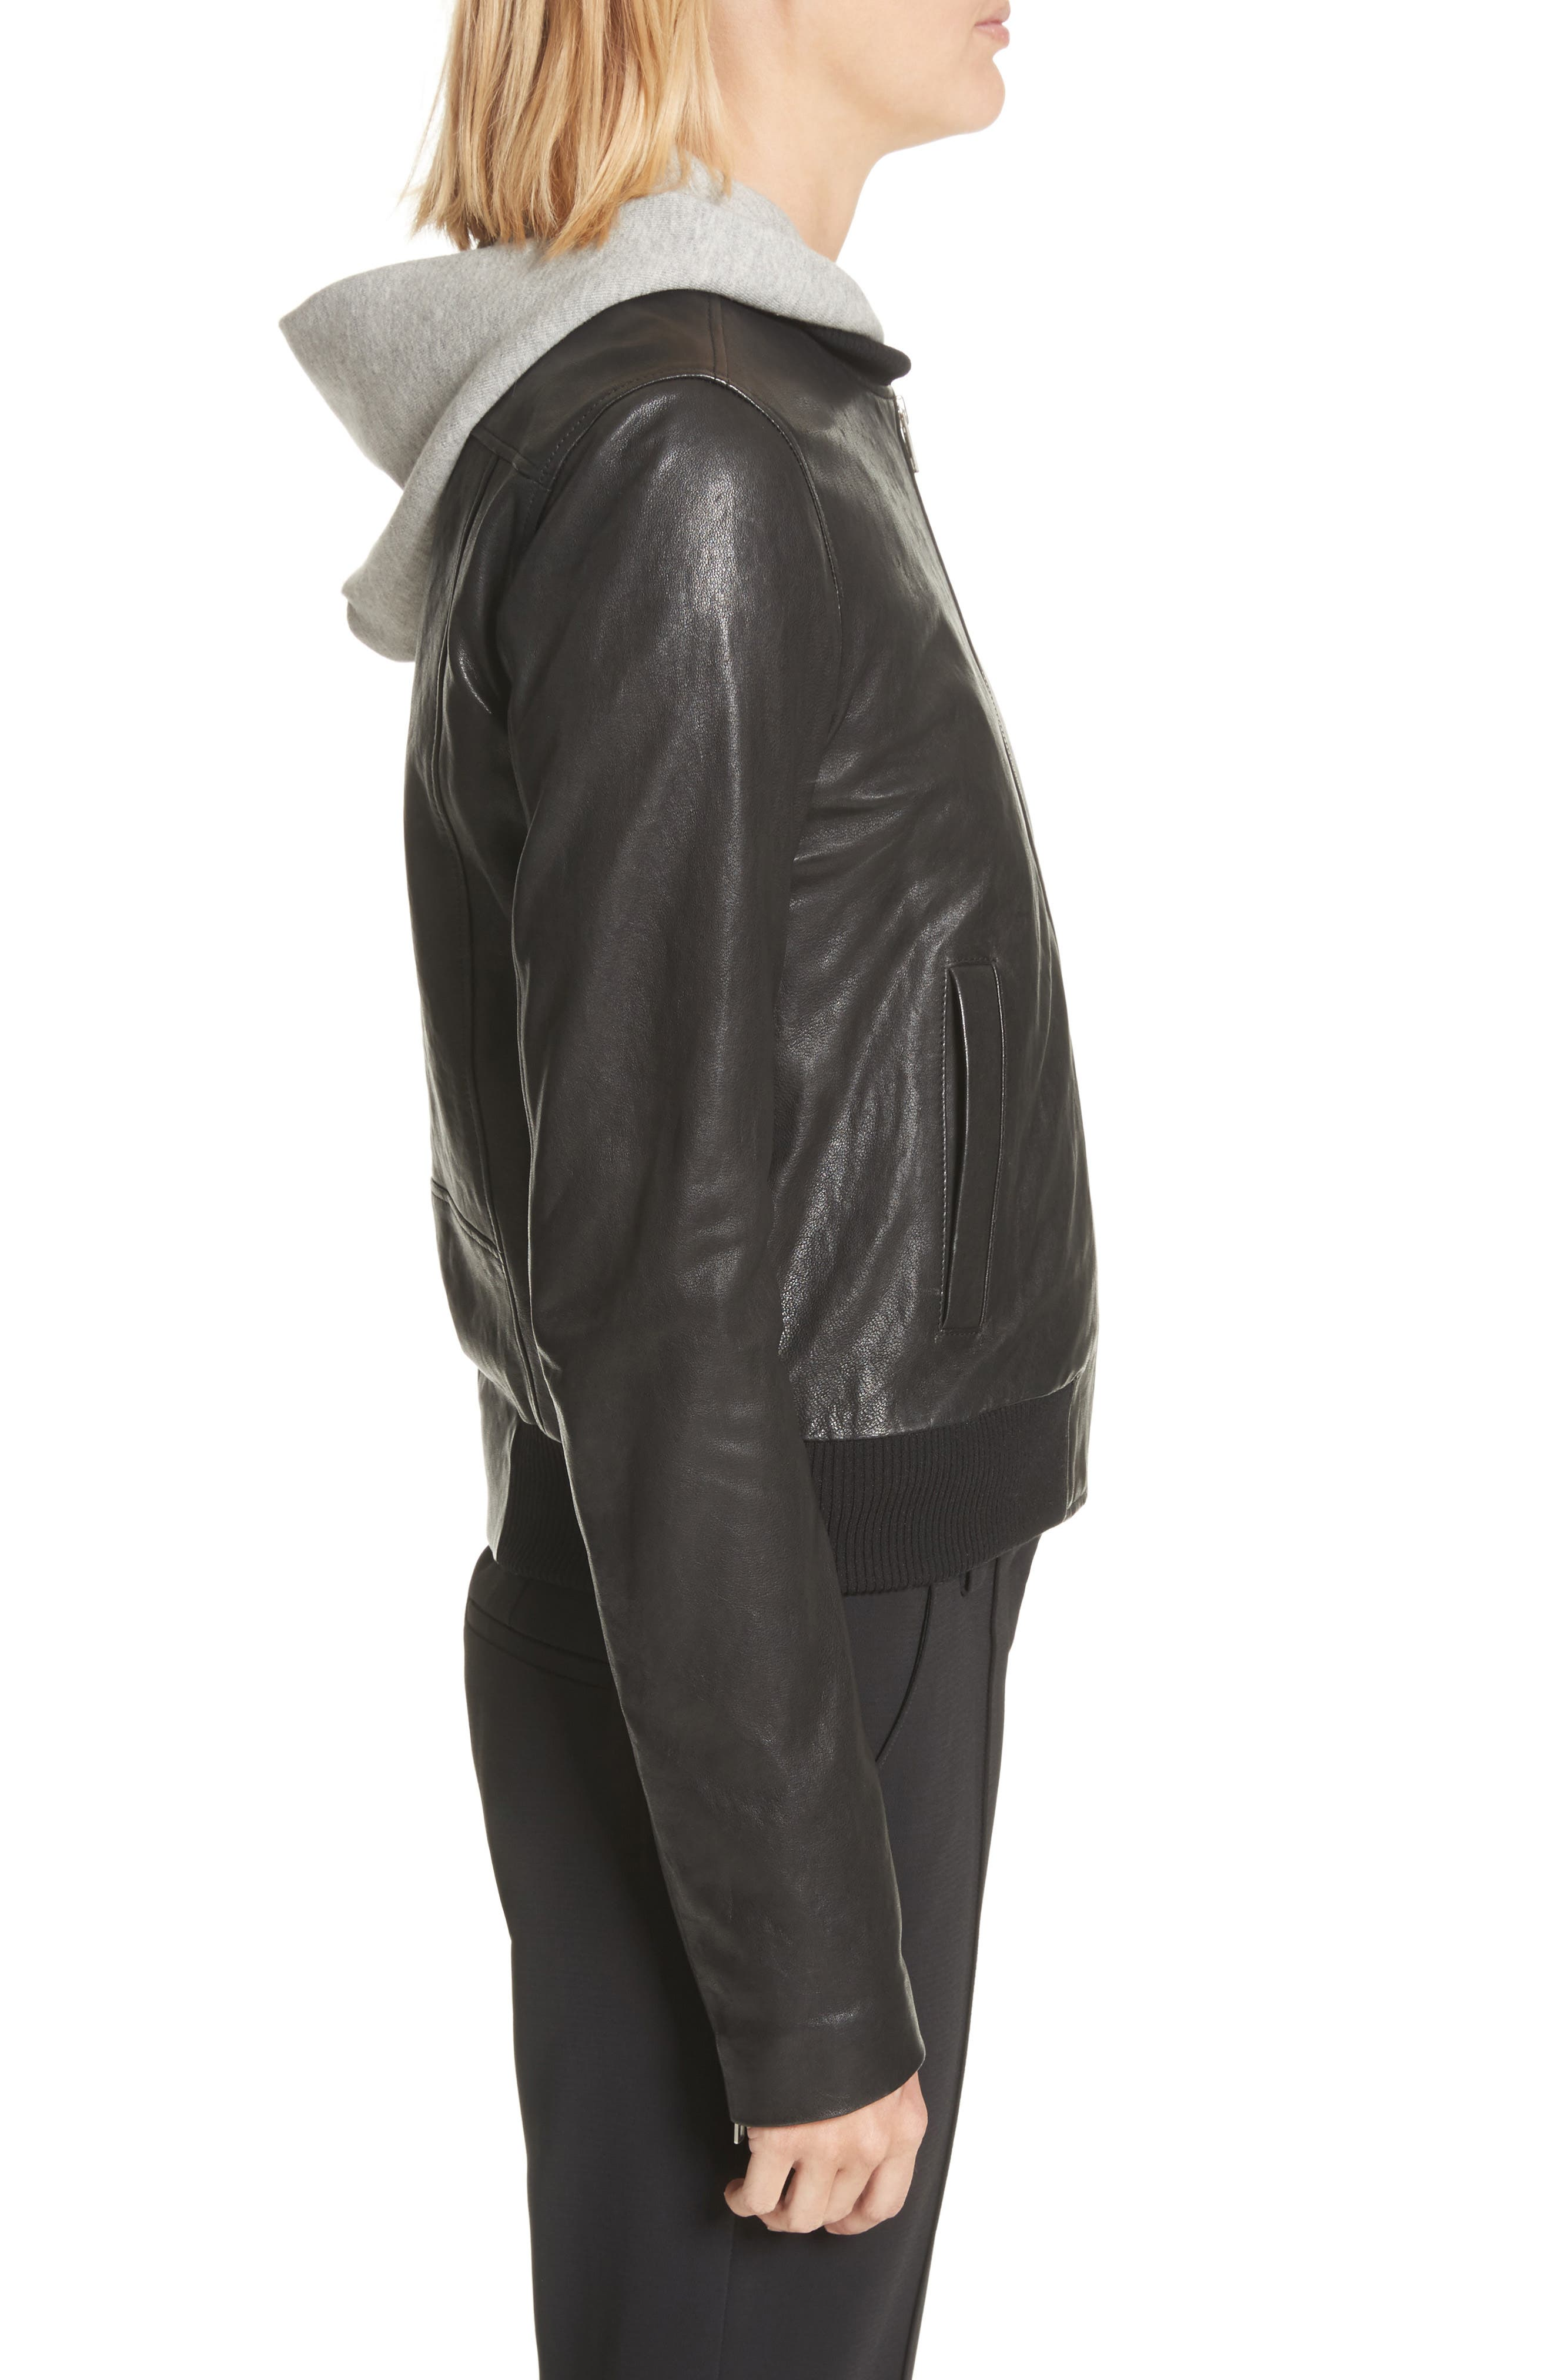 Edison Leather Jacket with Removable Hooded Inset,                             Alternate thumbnail 4, color,                             Black